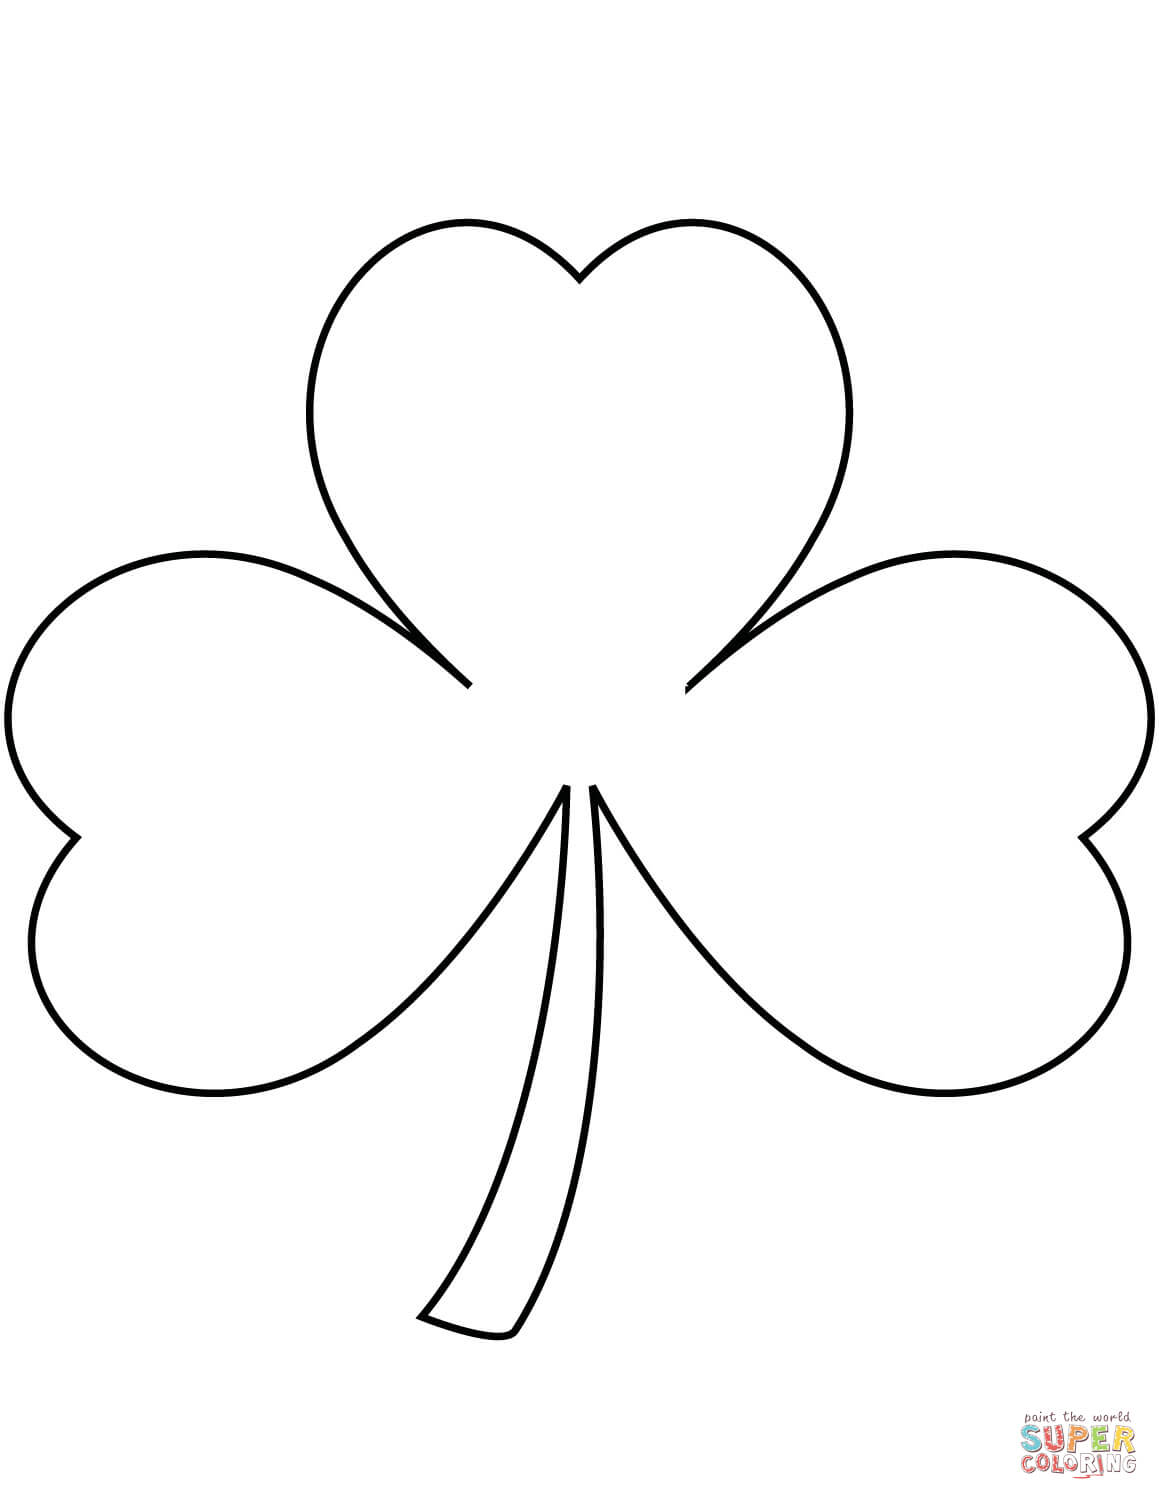 shamrock coloring pages finnegan coloring page of a shamrock